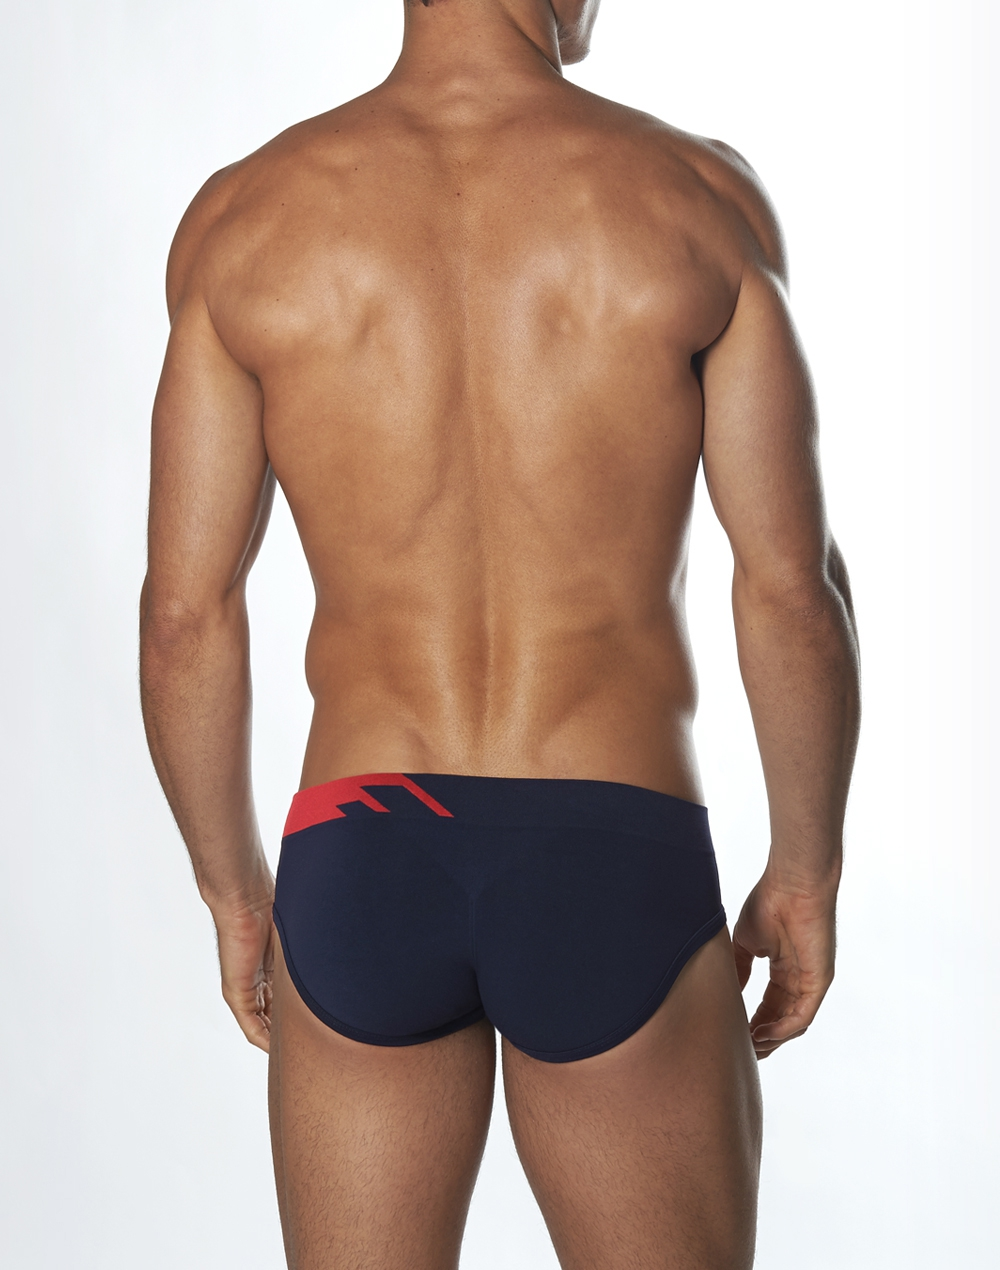 d-hedral-bezsvikove-slipy-seamless-brief-modra-navy-red2